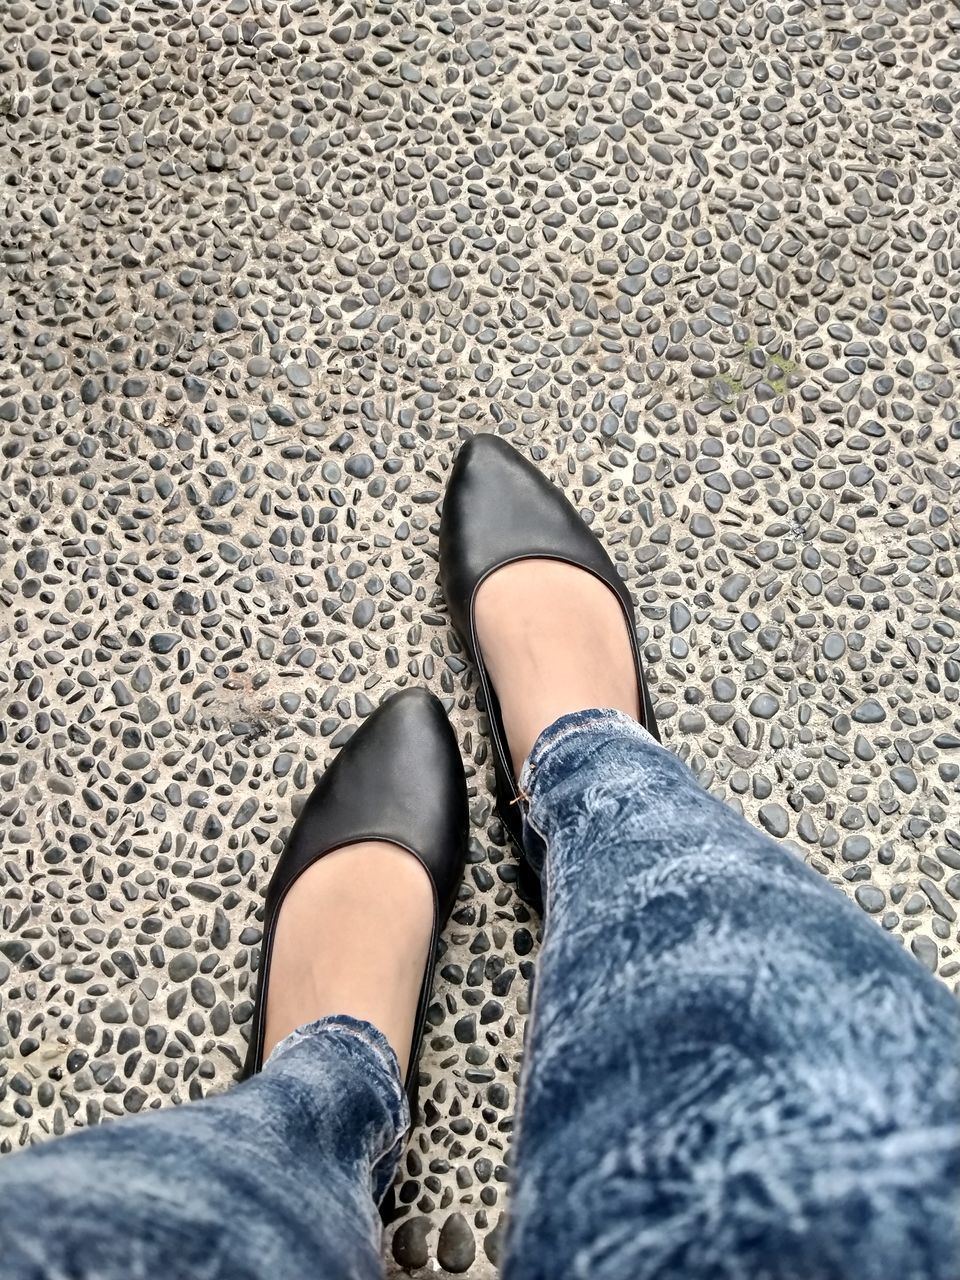 LOW SECTION OF WOMAN WEARING SHOES STANDING ON GROUND